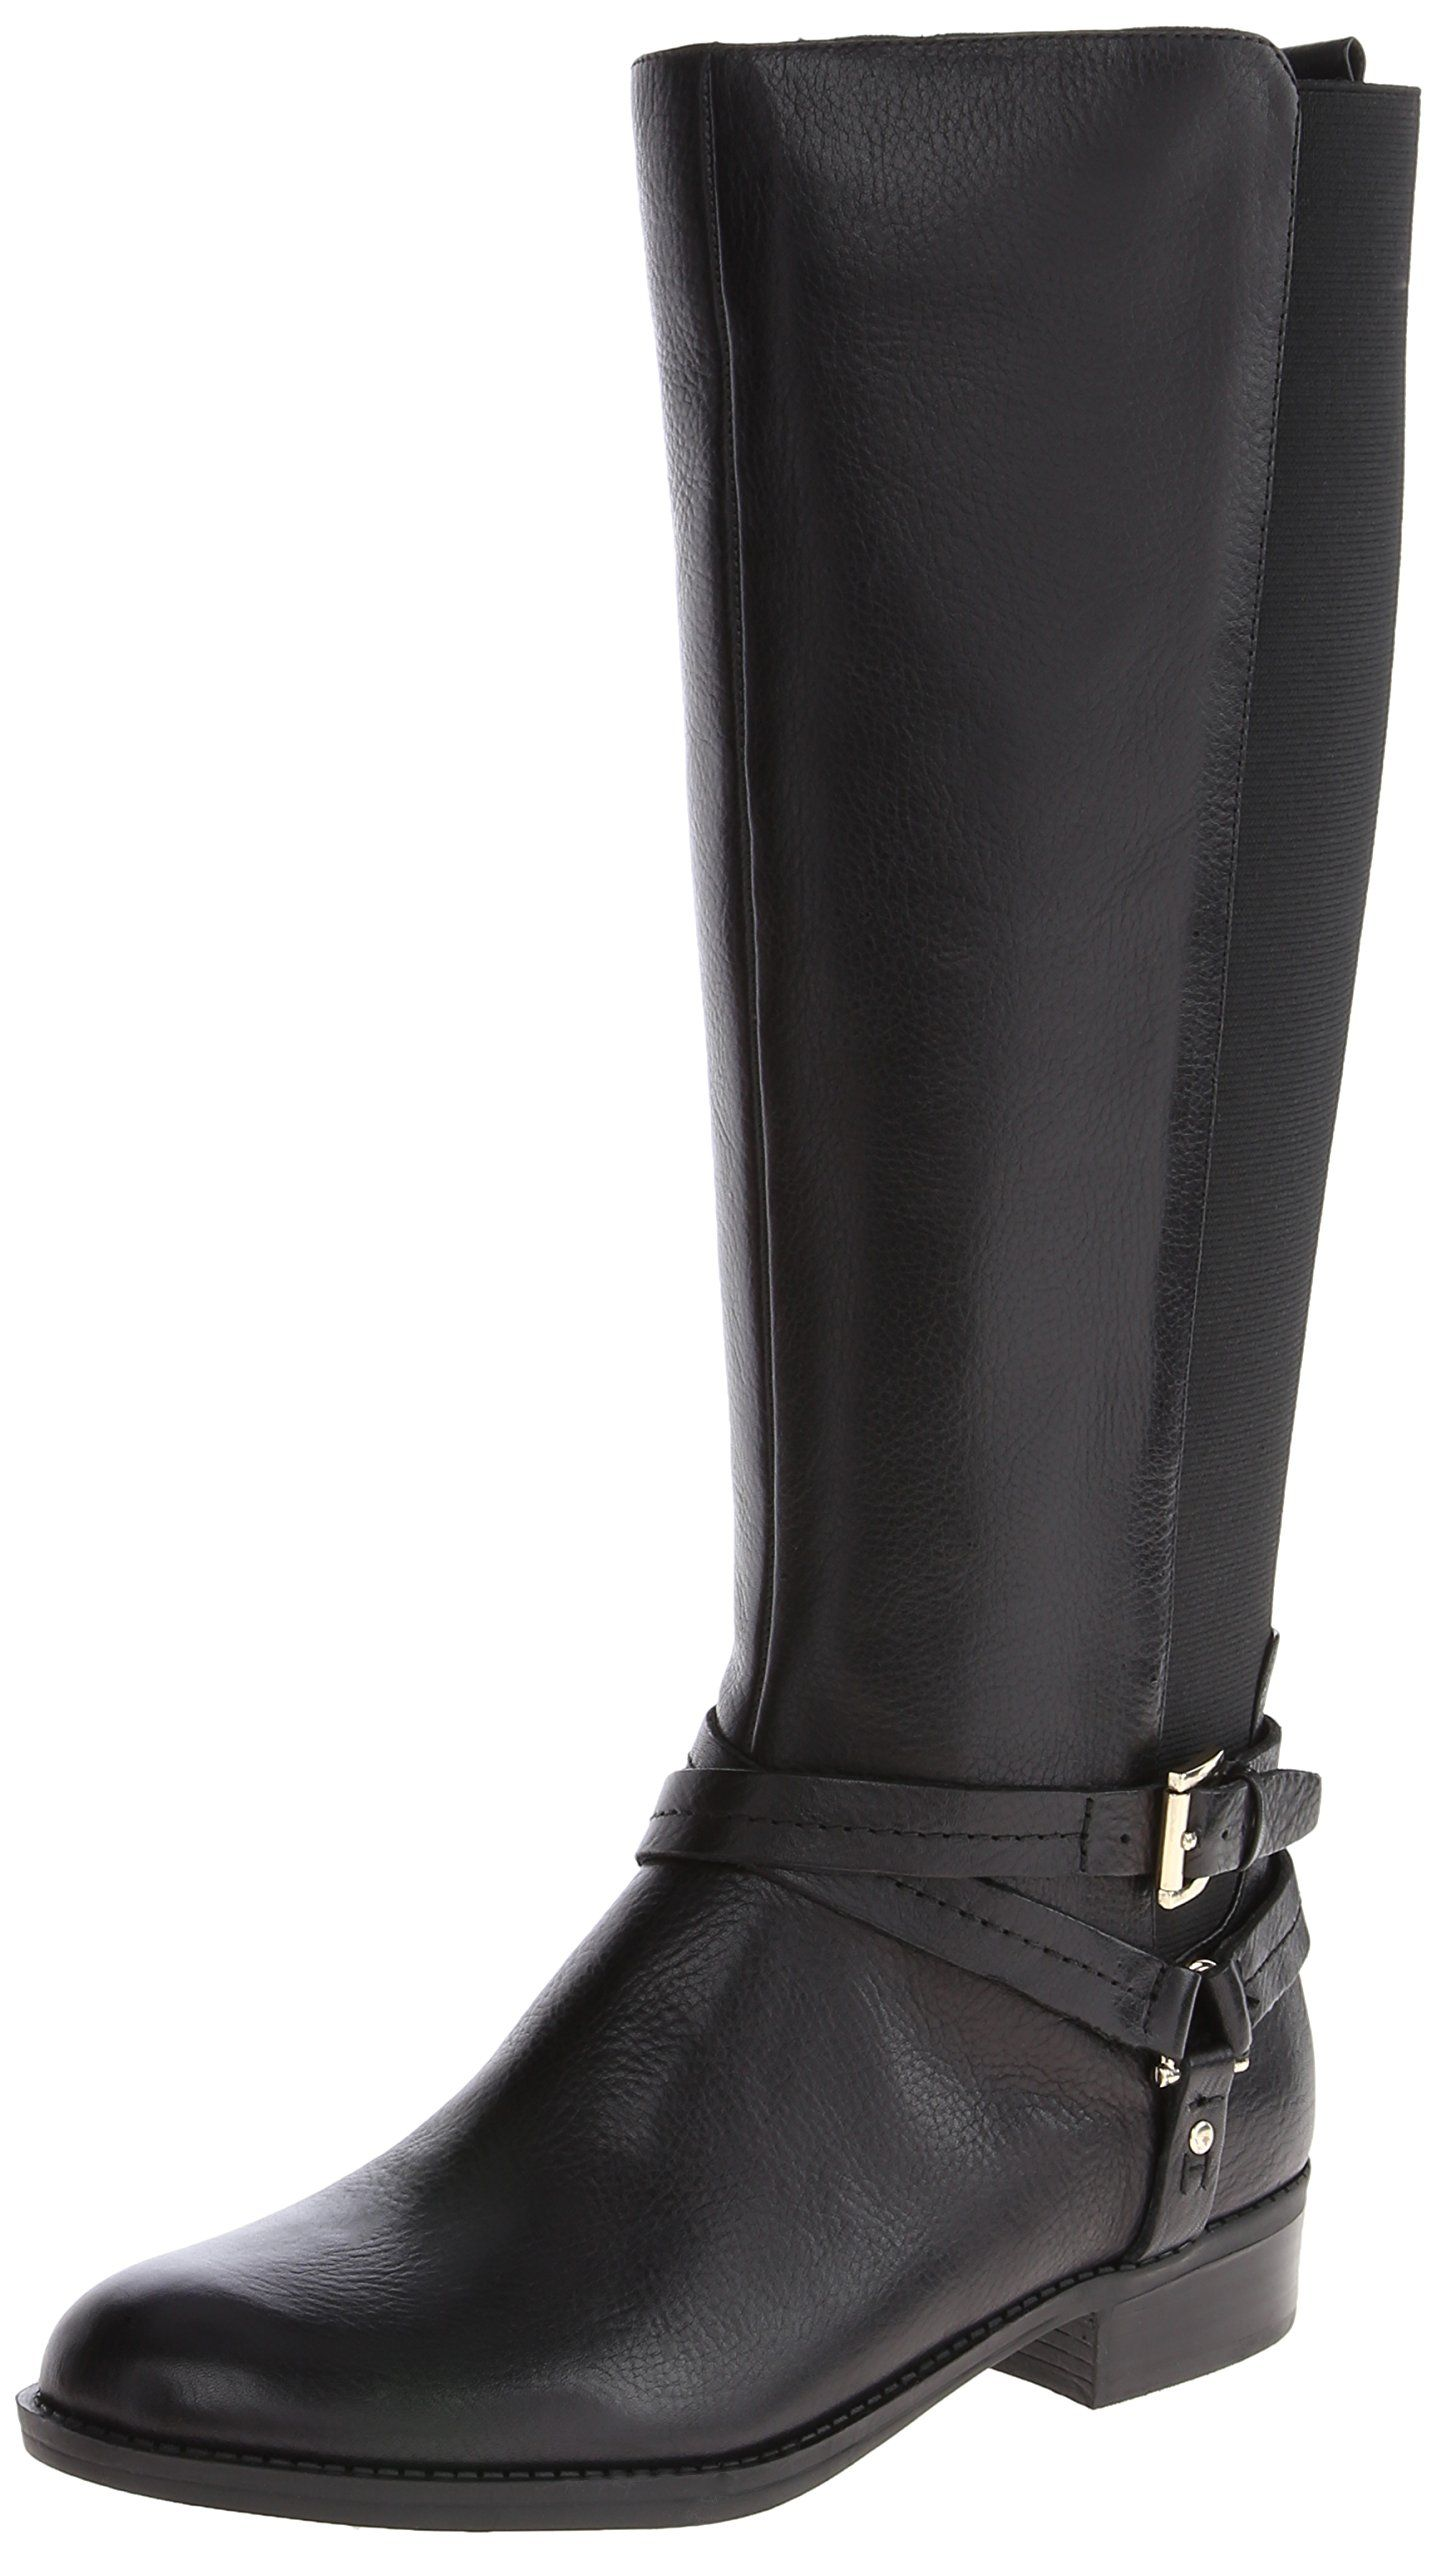 7d07e981a59 Tommy Hilfiger Women's Sienna Riding Boot,Black,8.5 M US   Epic Chic ...